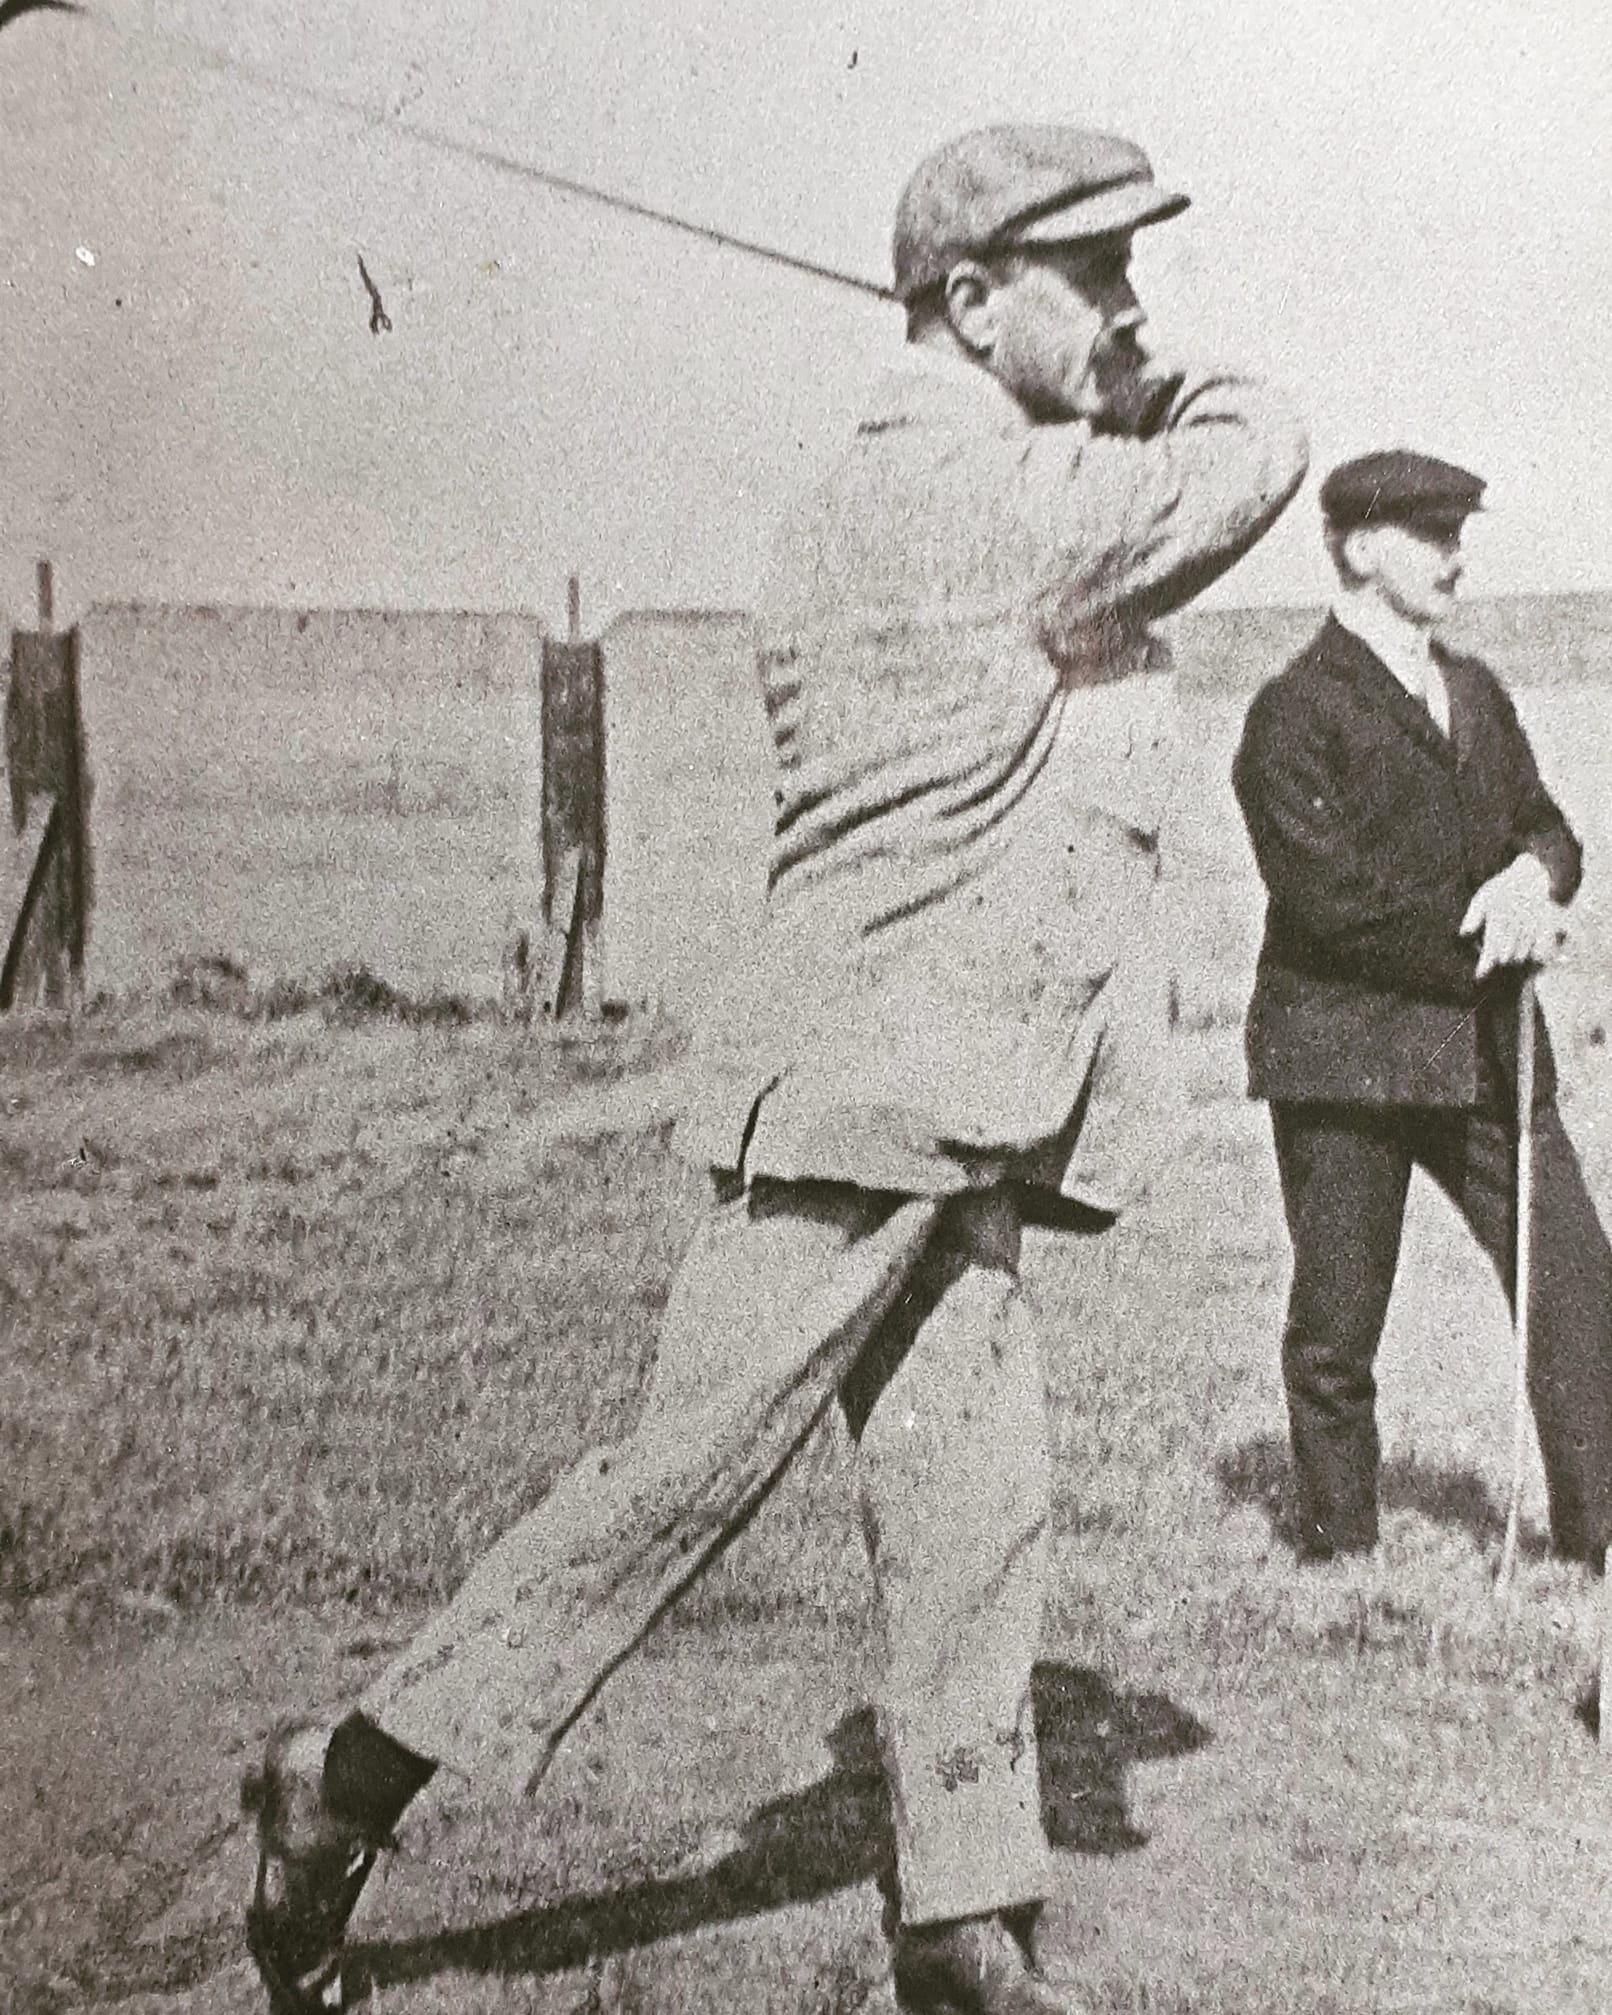 Unnamed golfer vintage photo of a golfer with a cap swinging a club